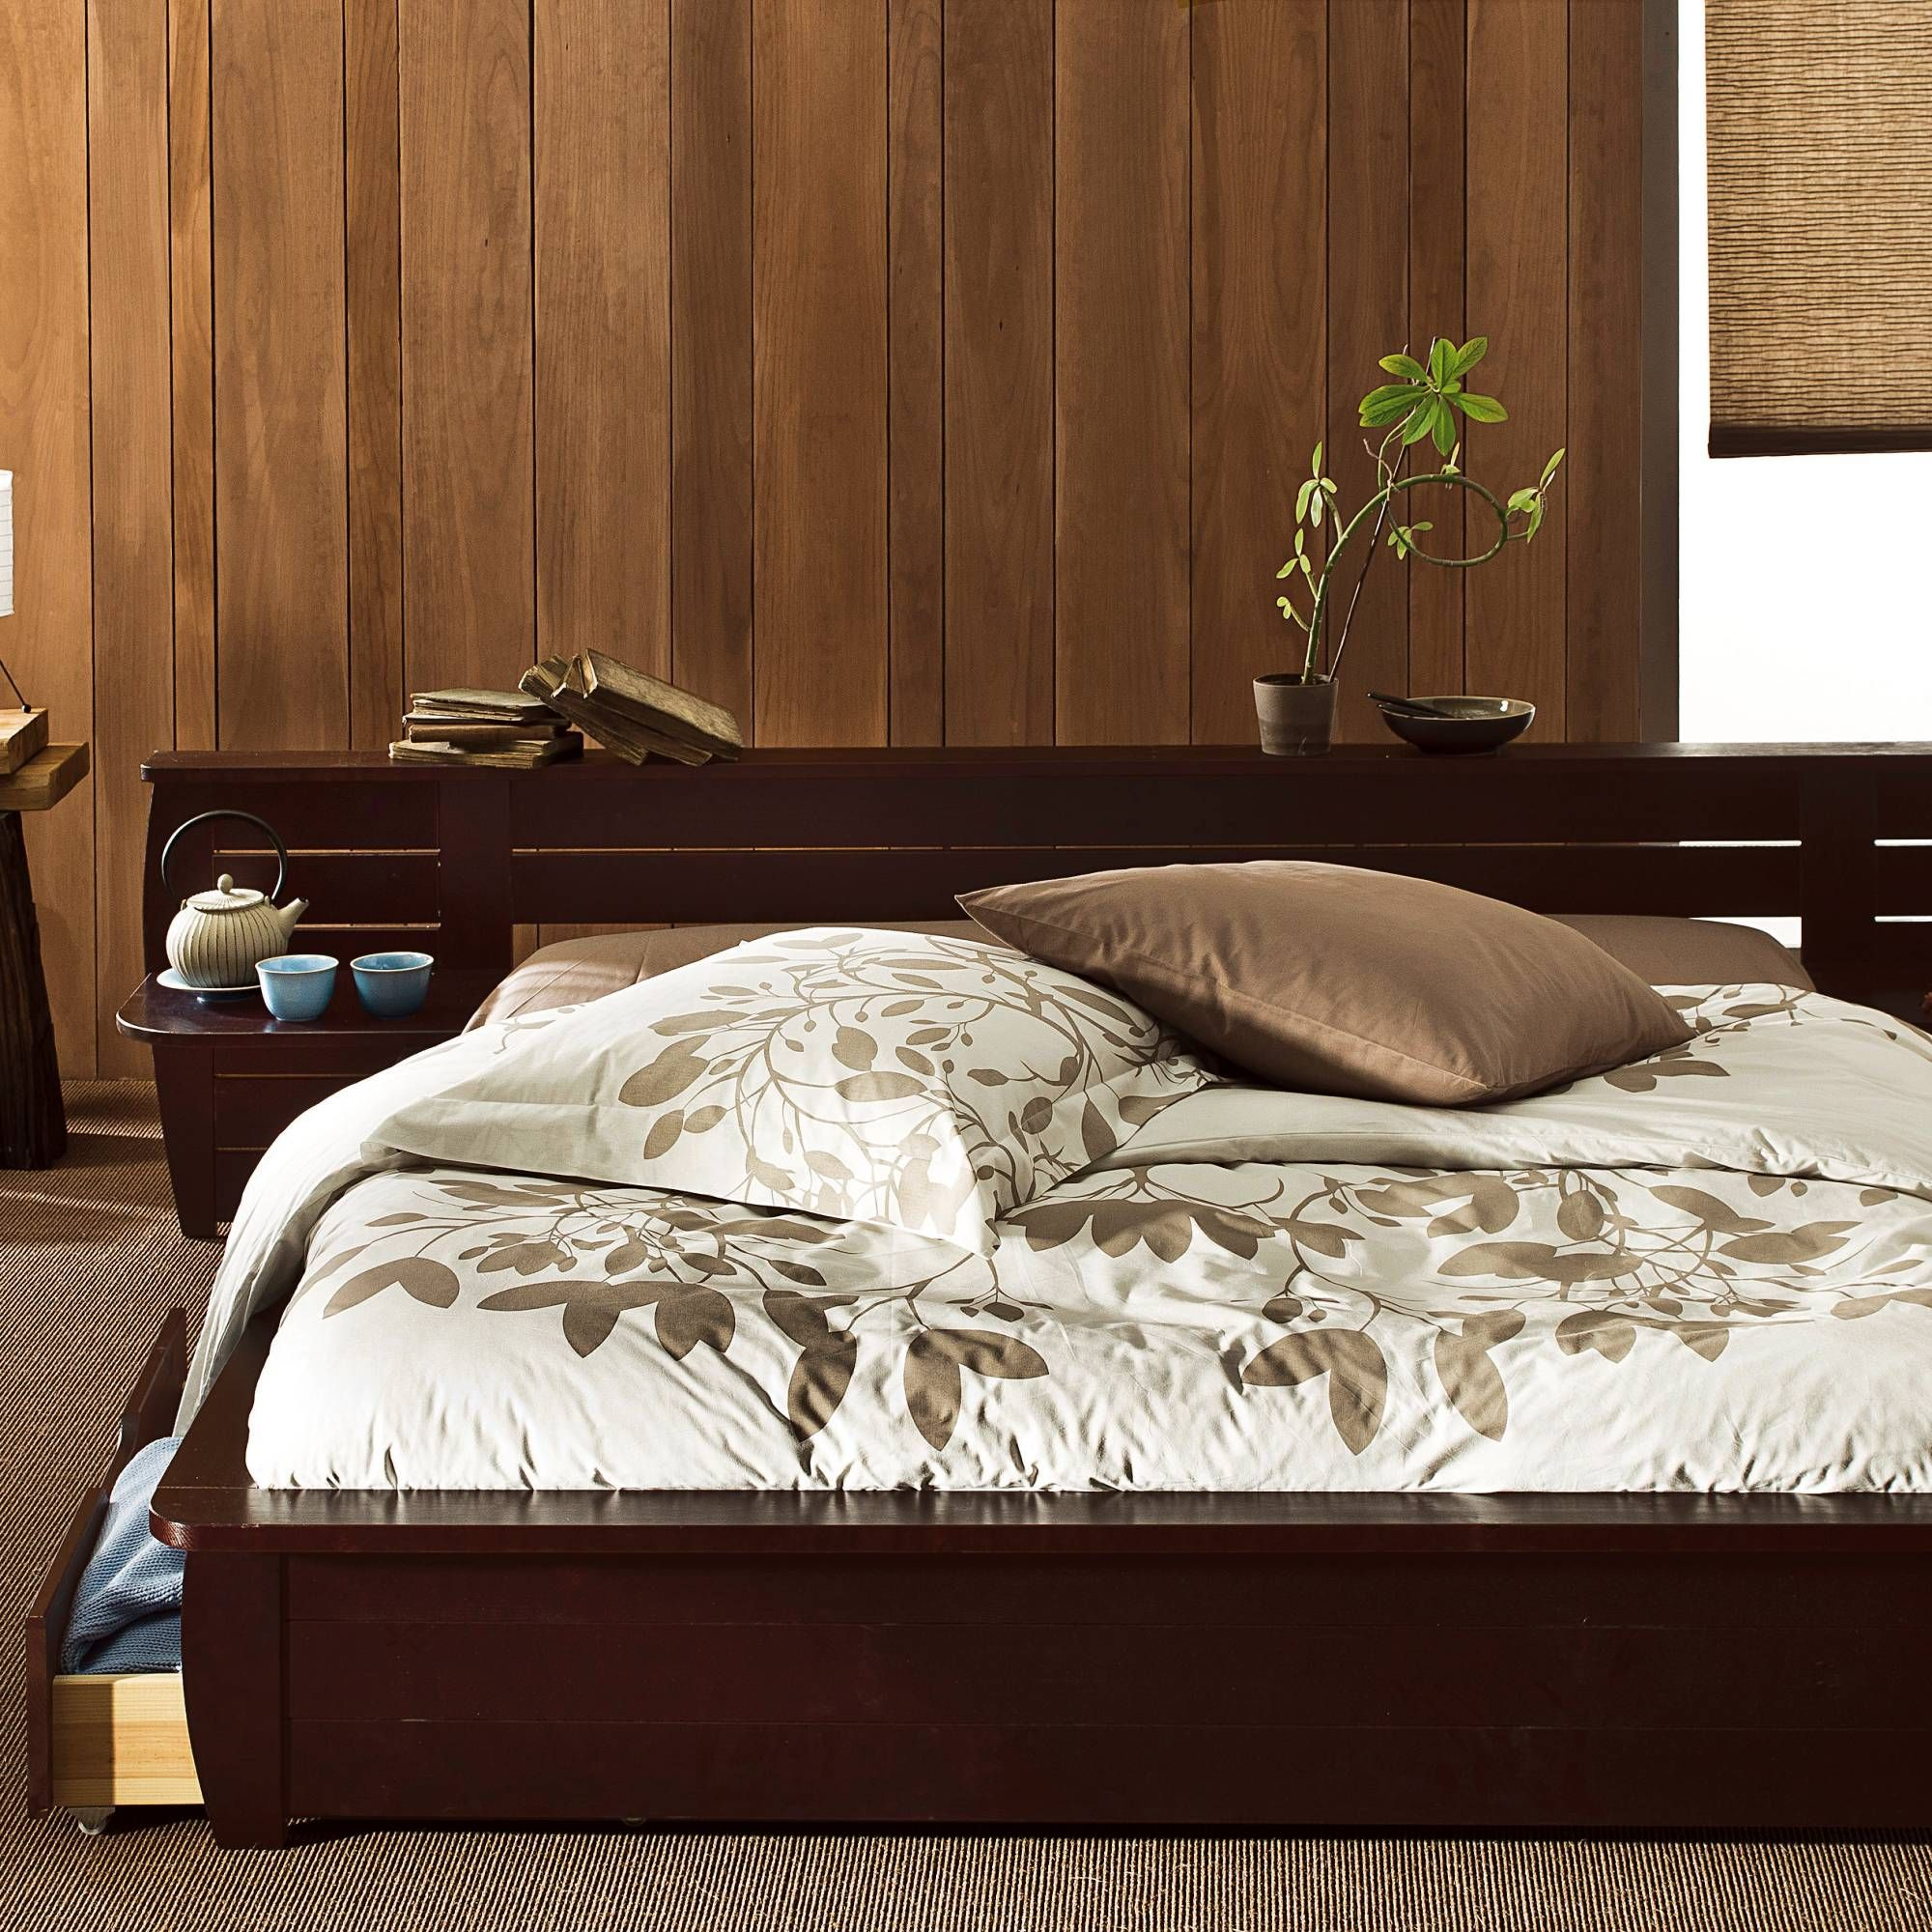 Solid pine KITO allinone bed Bed, Bed frame, One bed